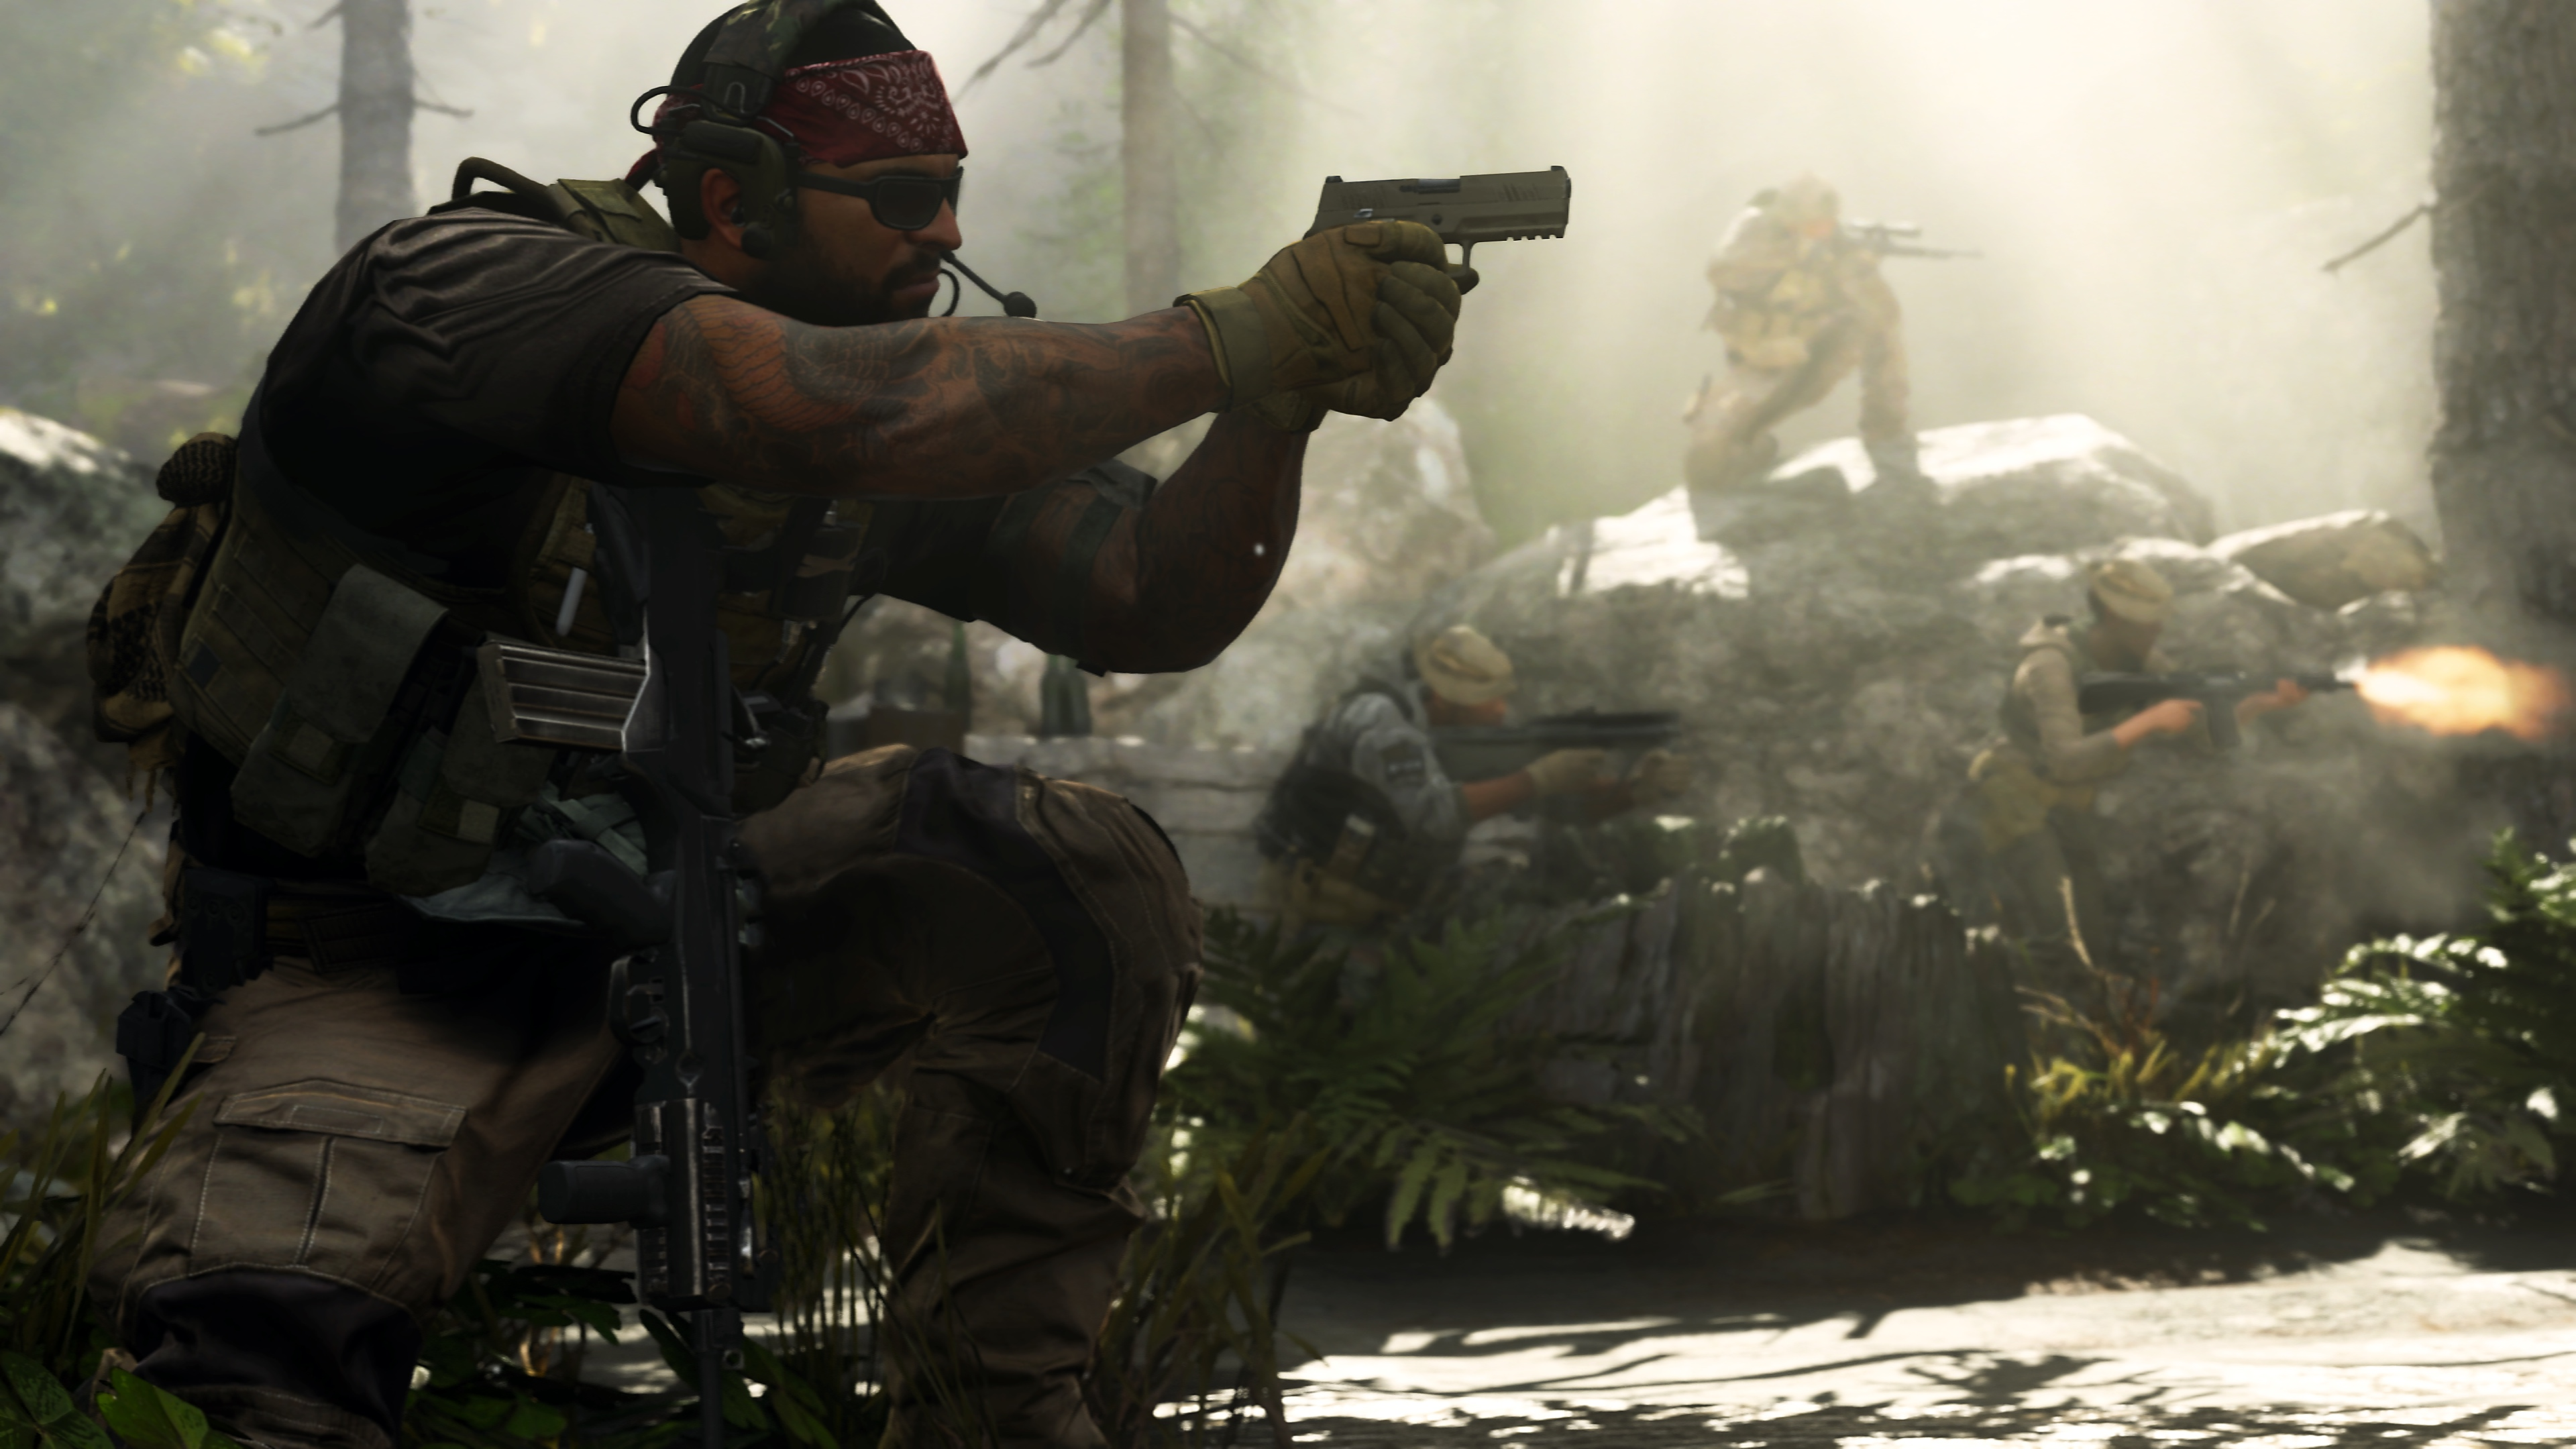 A player wearing sunglasses and a bandana aims a pistol in a rocky forest, with multiple teammates in the background, in a screenshot from Call of Duty: Modern Warfare (2019)